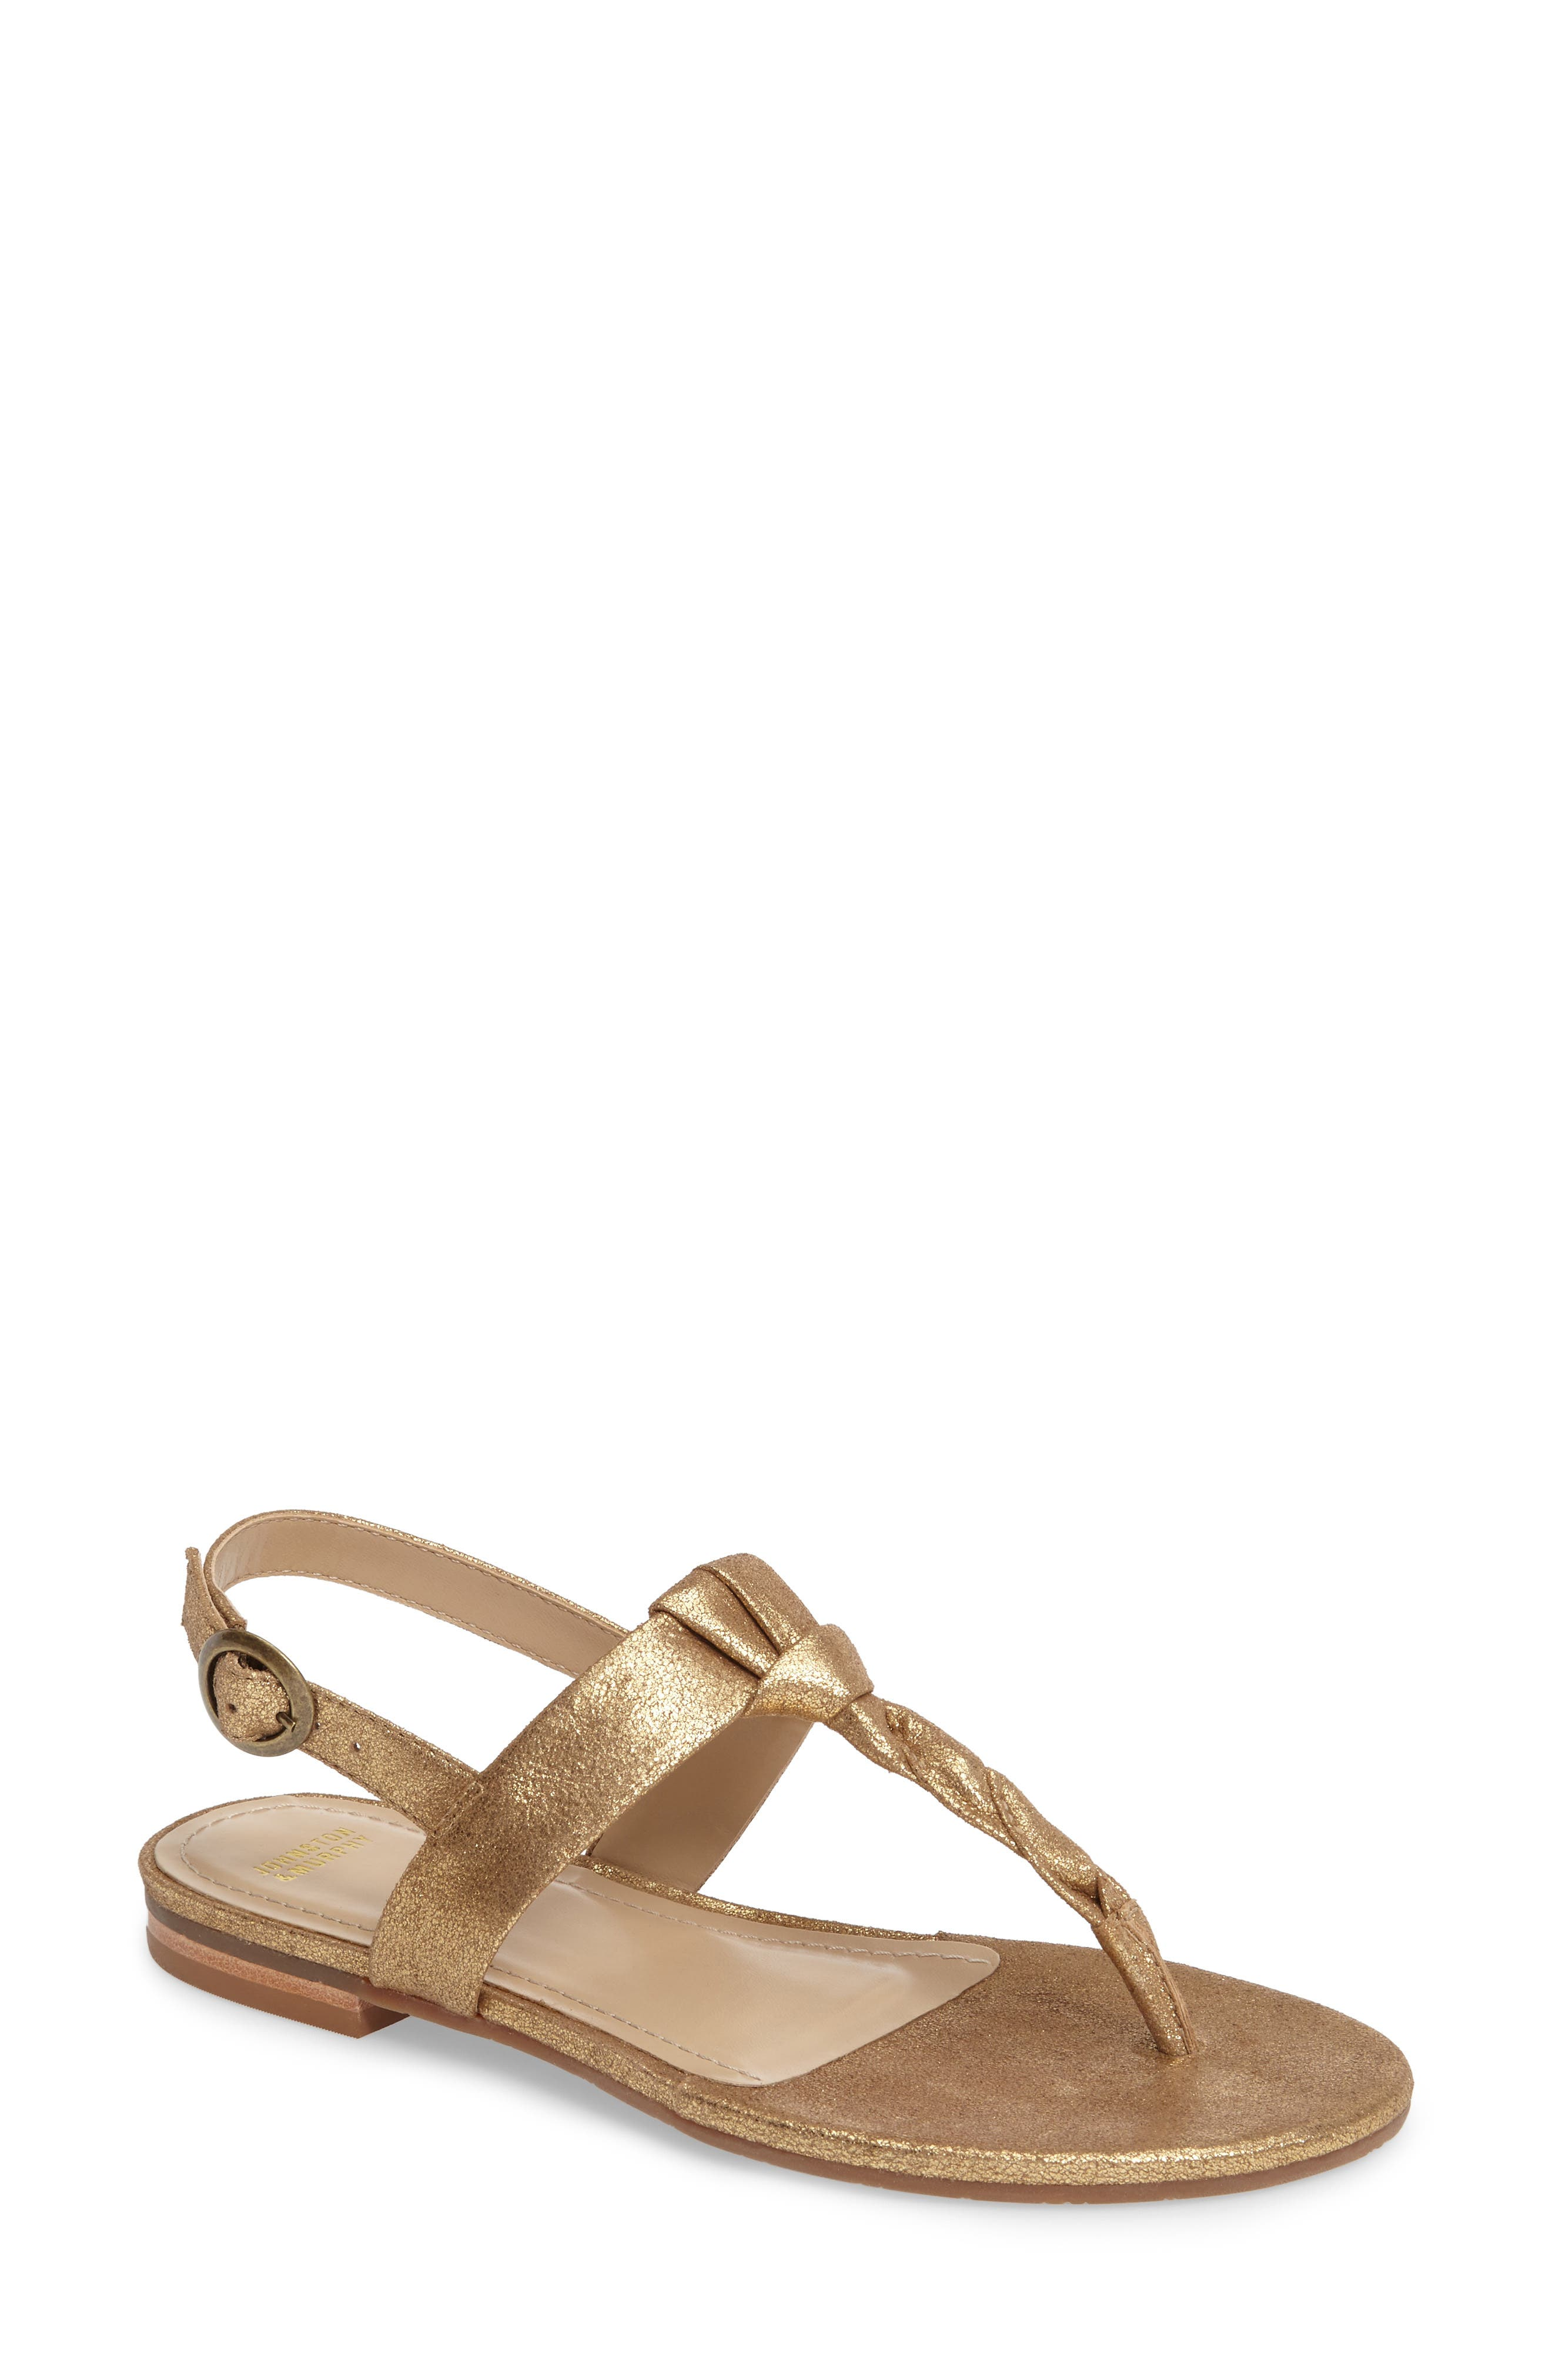 Main Image - Johnston & Murphy Holly Twisted T-Strap Sandal (Women)